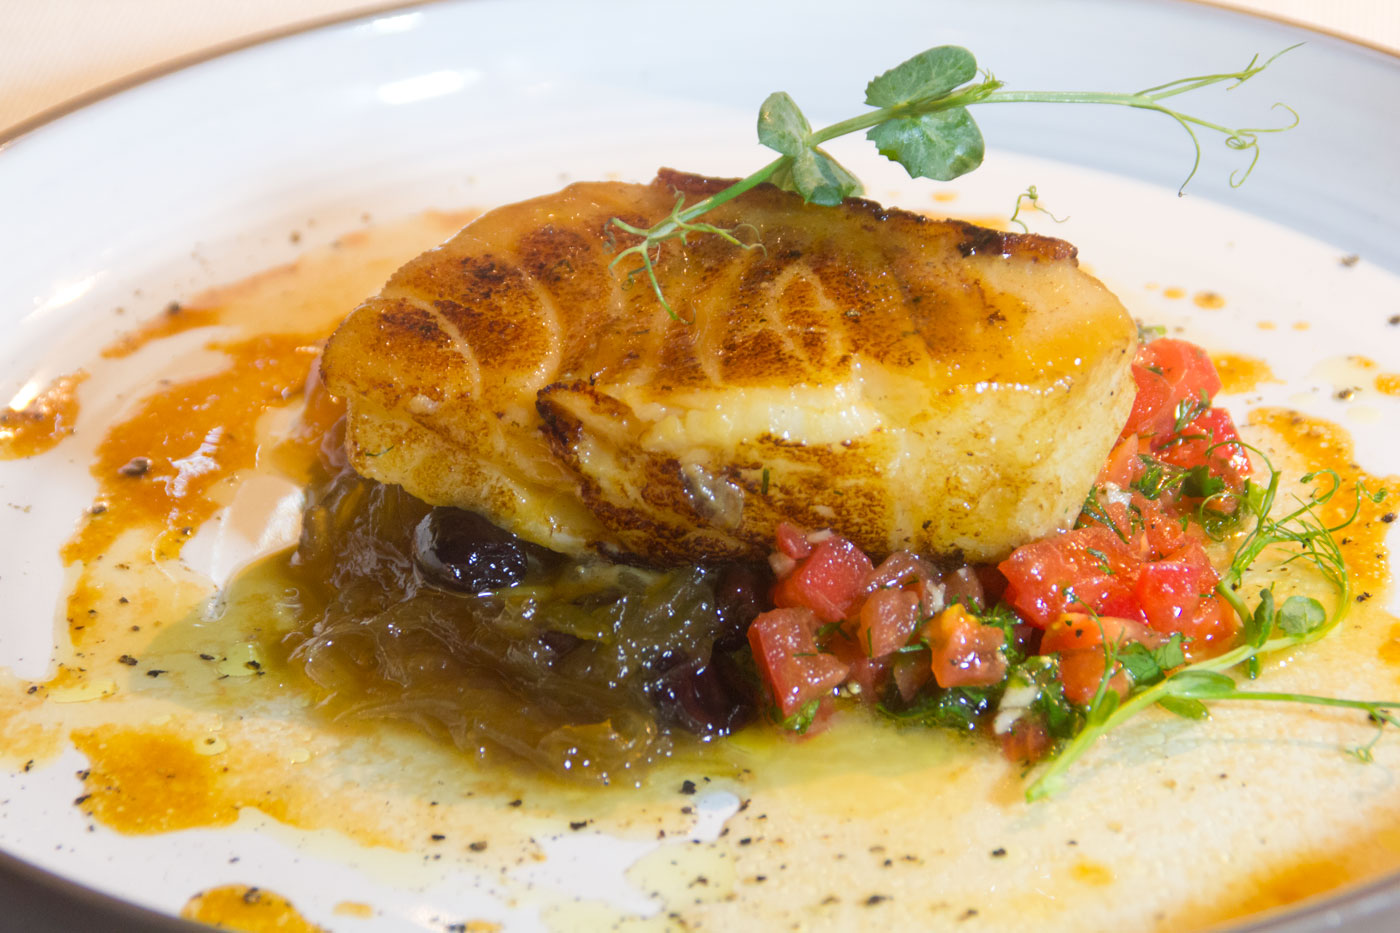 Moscow catch: Zander fillet in Miso sause